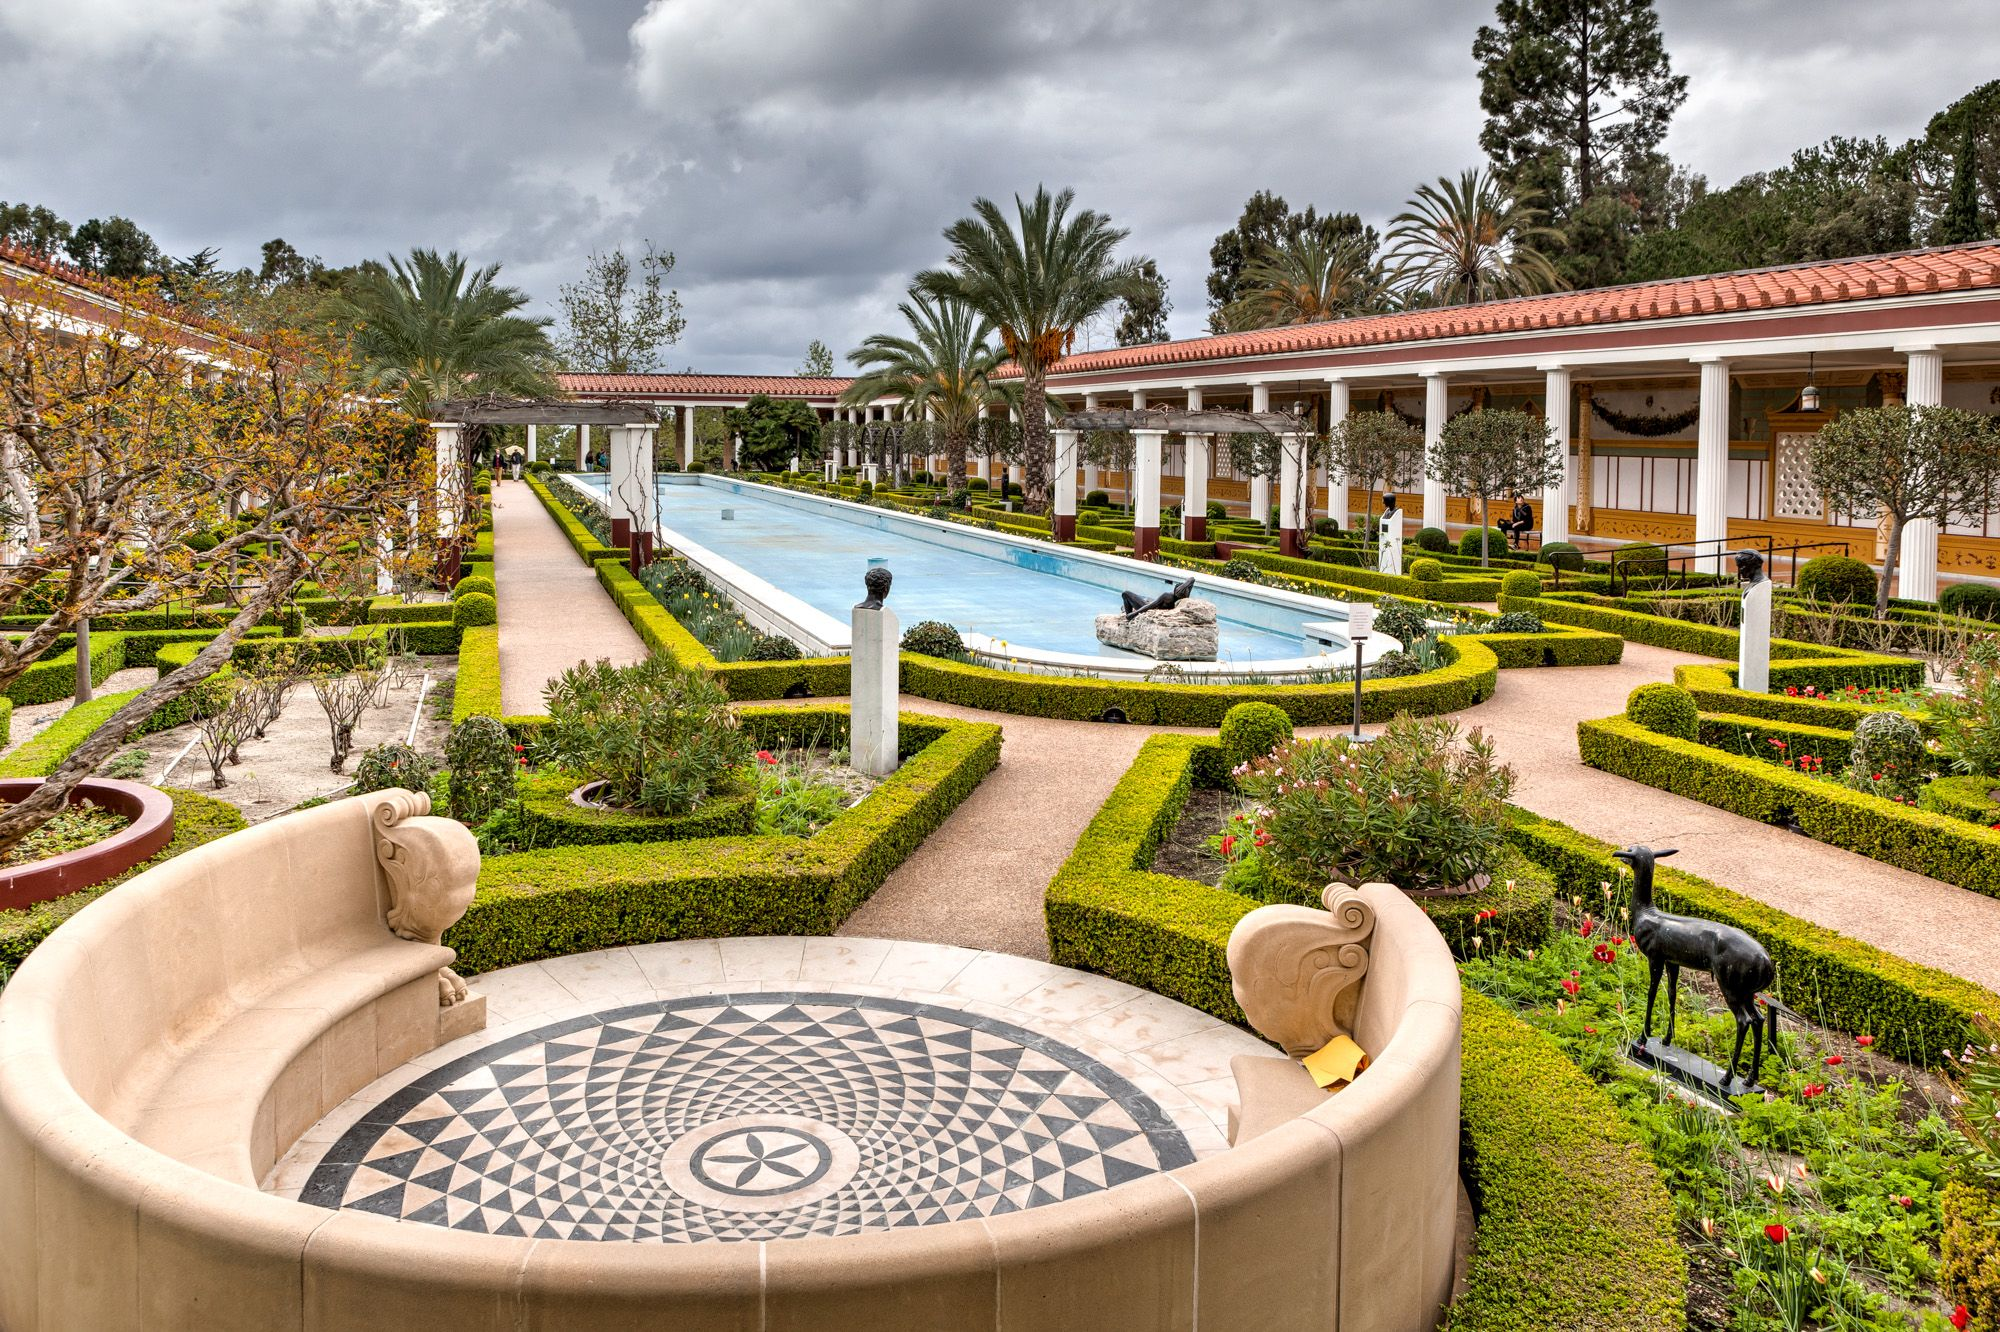 Getty Center and Getty Villa a must see if you are in Los Angeles